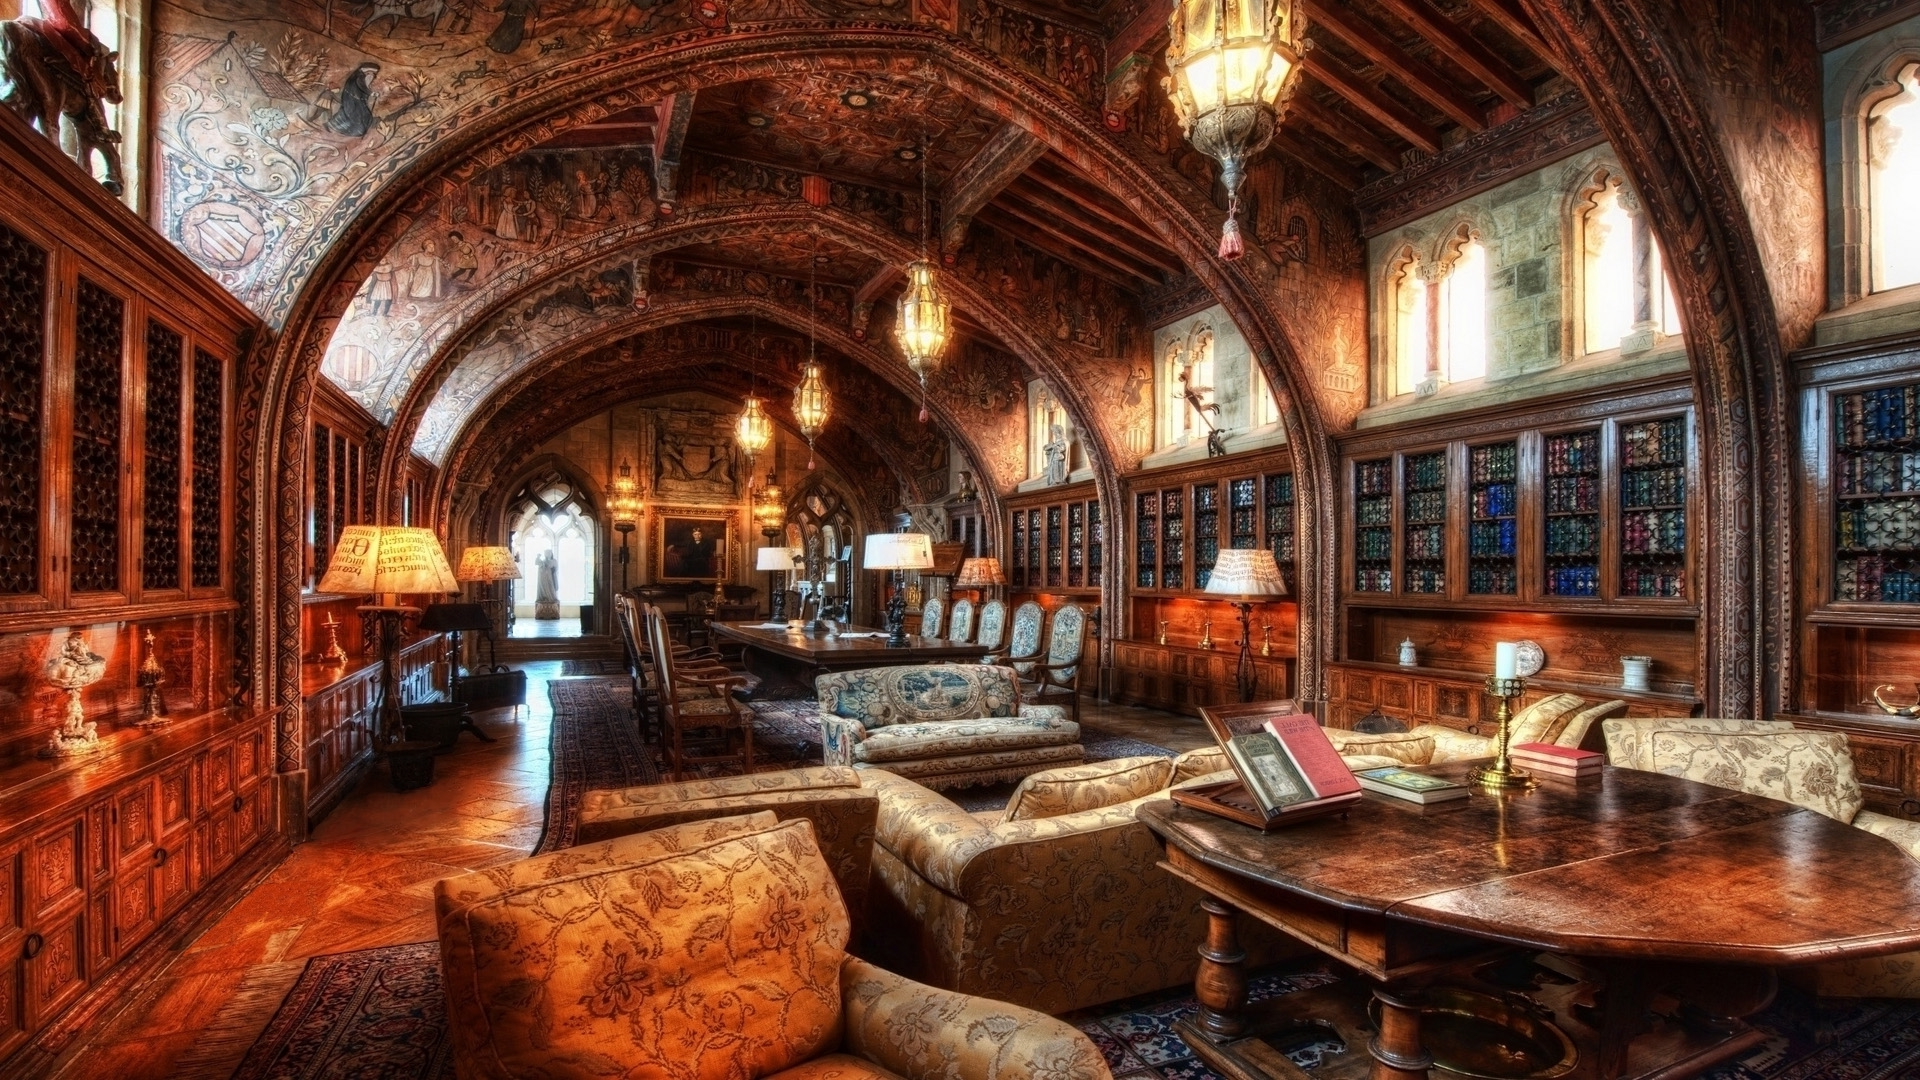 21424_indoor_old_library